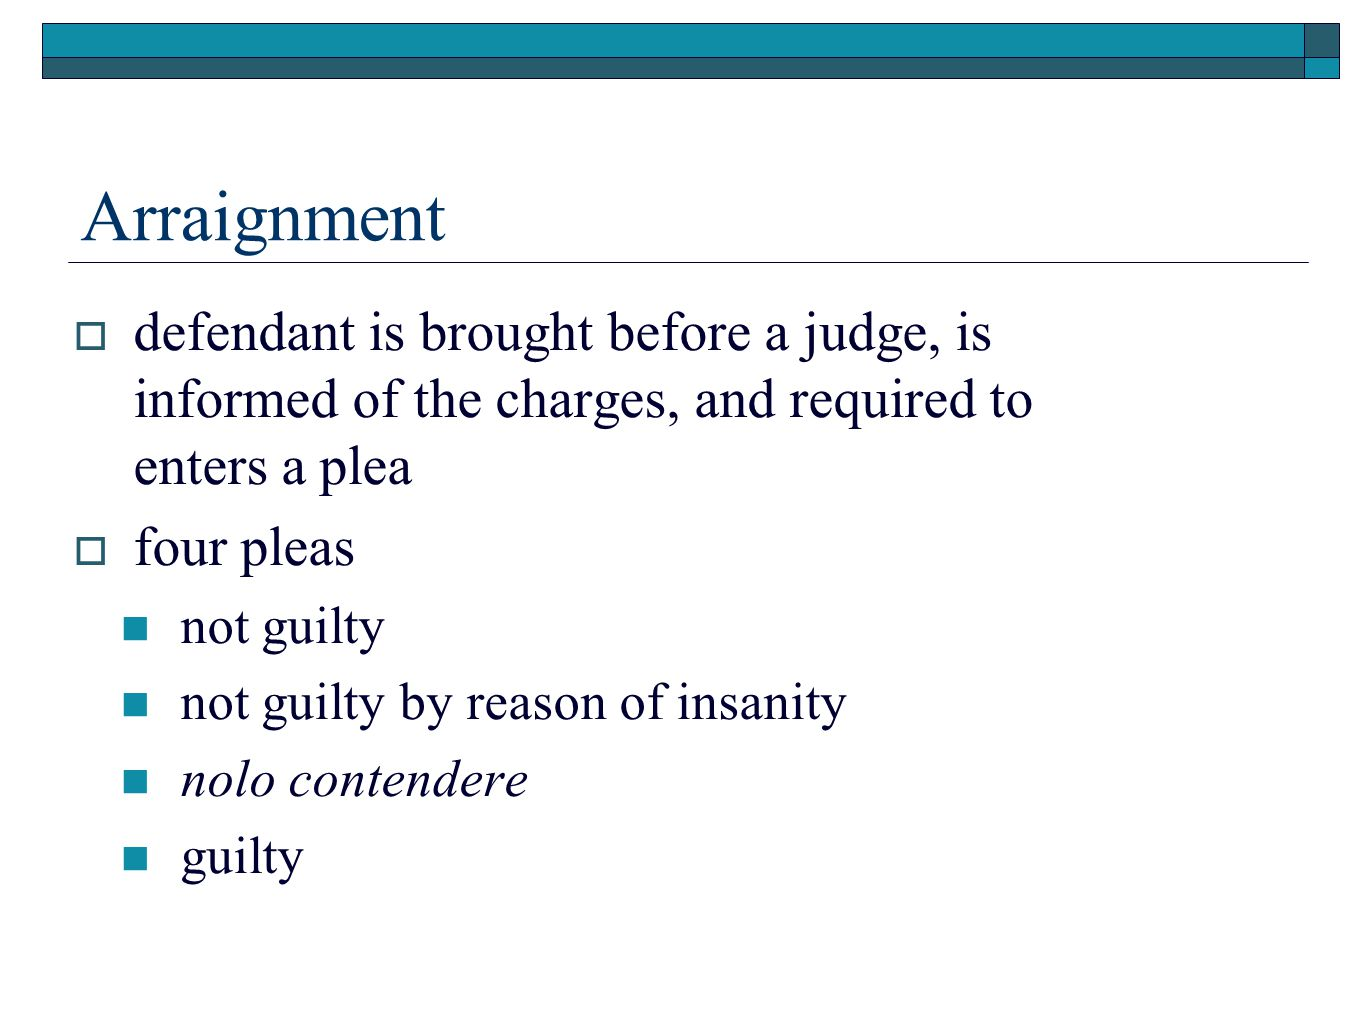 Arraignment  defendant is brought before a judge, is informed of the charges, and required to enters a plea  four pleas not guilty not guilty by reason of insanity nolo contendere guilty